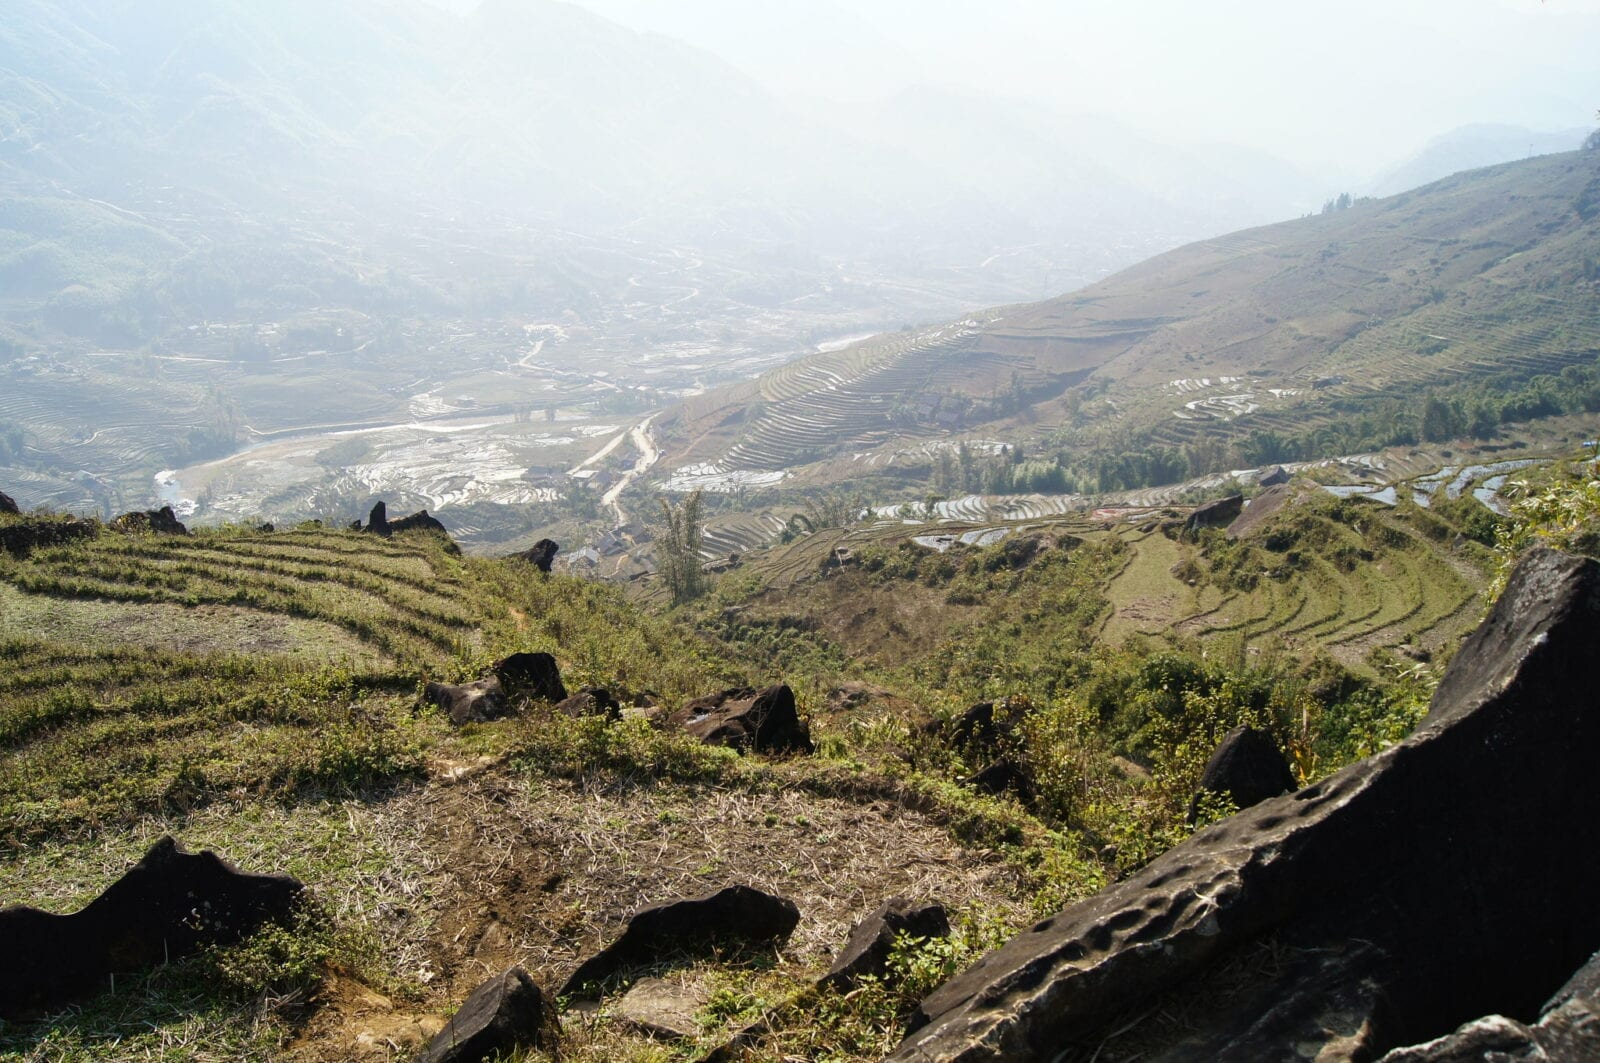 Image of the Muong Hoa Valley in Vietnam, near Sapa